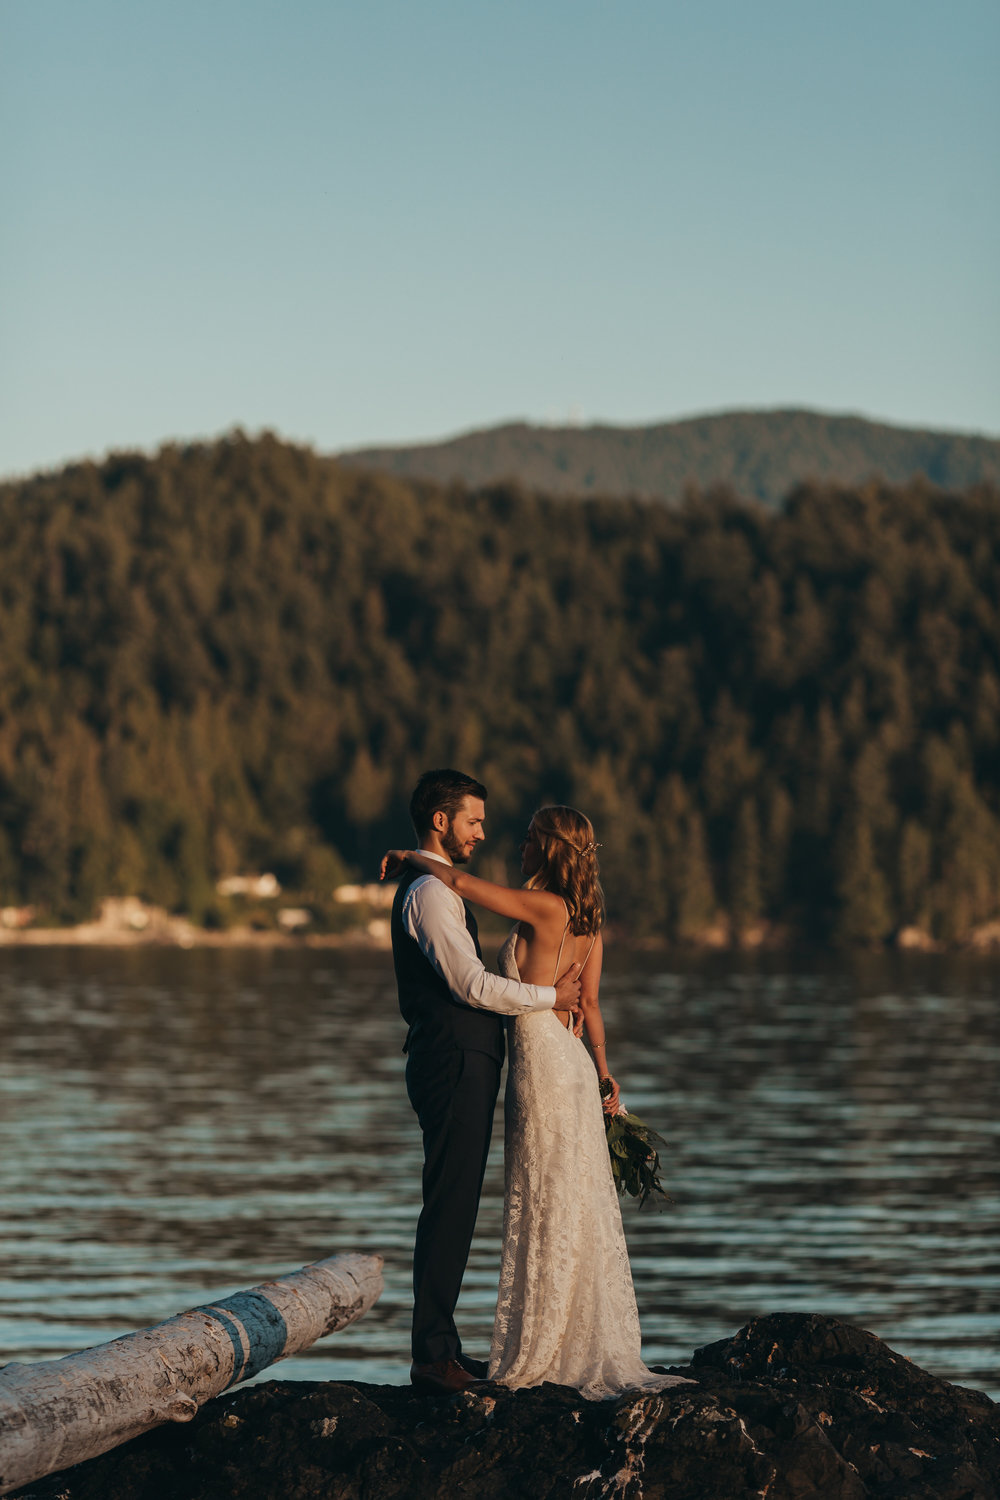 Sunshine Coast Wedding Photographer, Gibsons Wedding Photos, Sunset Beach Wedding Photos, Jennifer Picard Photography, Vancouver Wedding Photography, Vancouver Wedding Photo and Video Team - Vegan Wedding -  (194).jpg